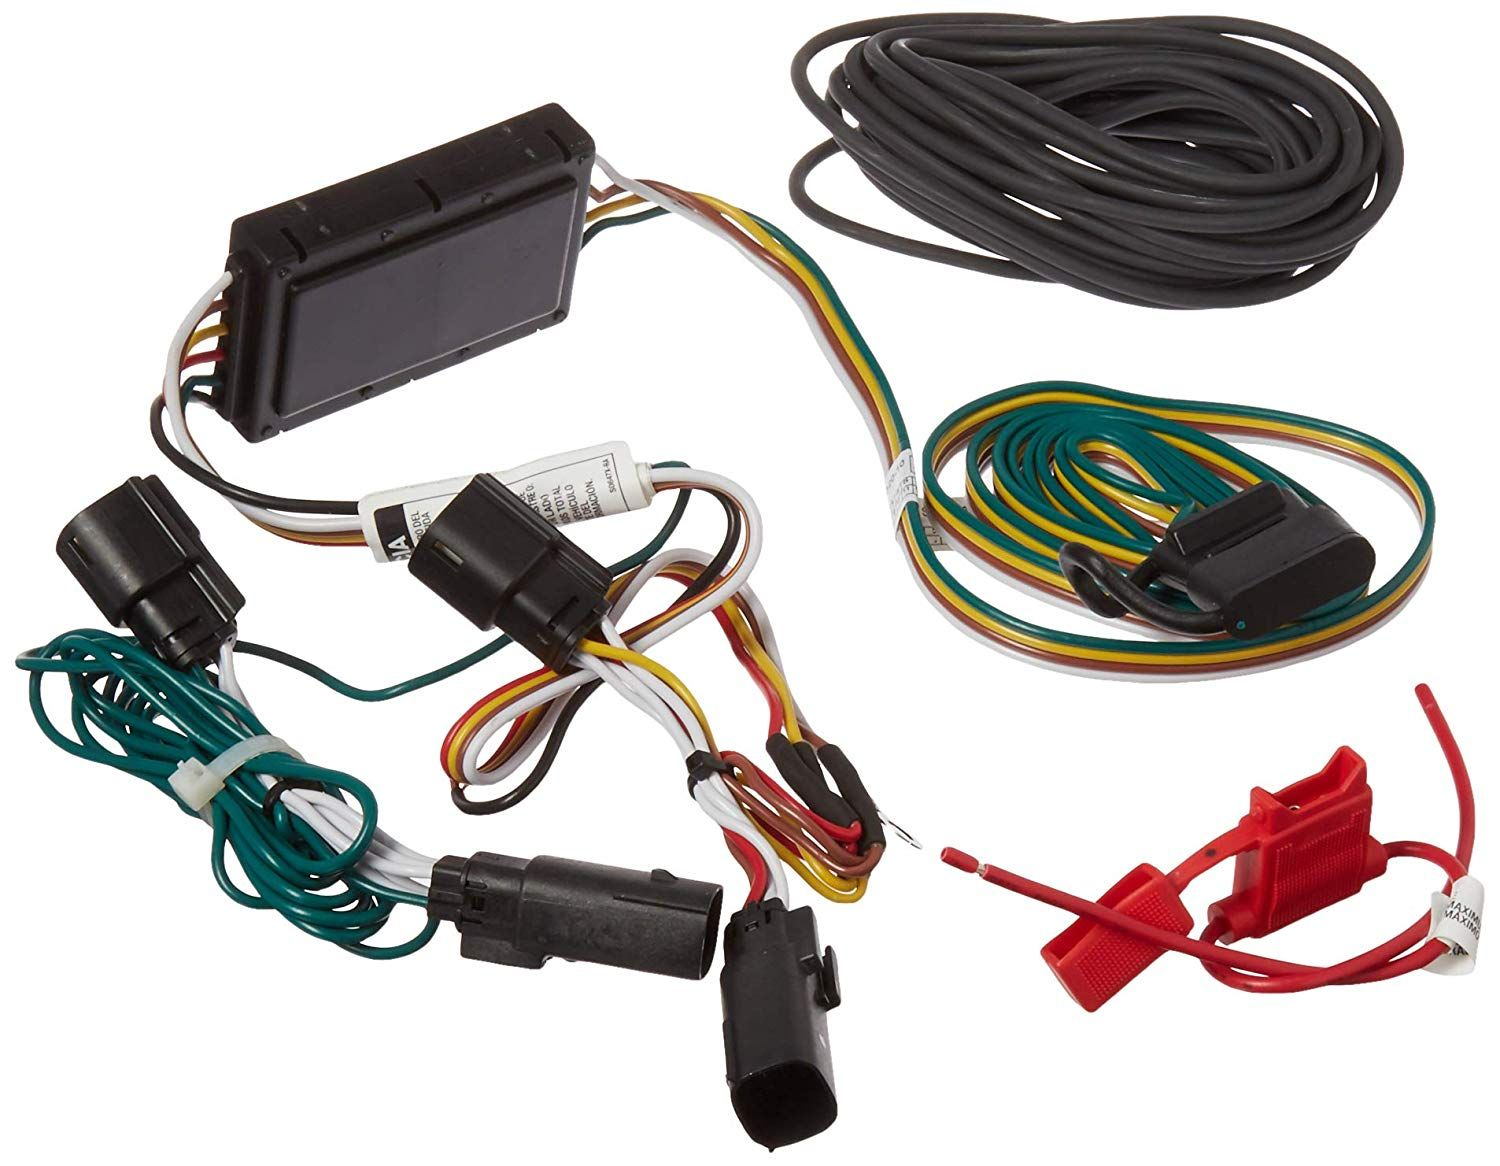 small resolution of curt manufacturing 56320 custom trailer wiring harness provides a 4 way flat connector for